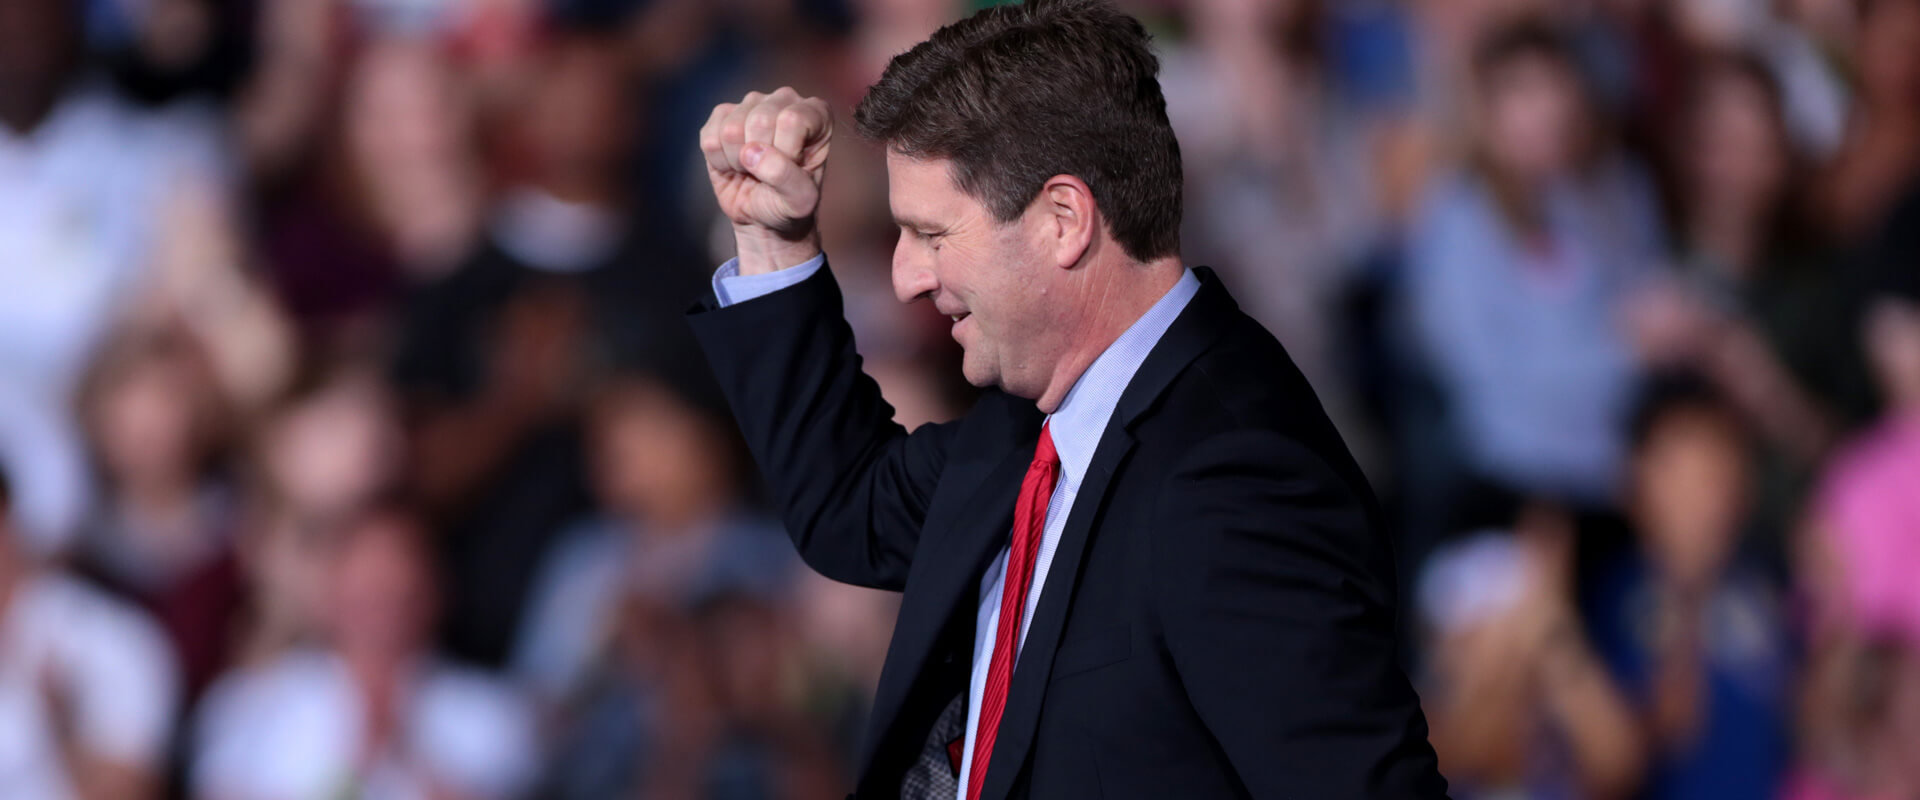 Brand Stories Mayor Greg Stanton Claims Victory in Phoenix Mayoral Race